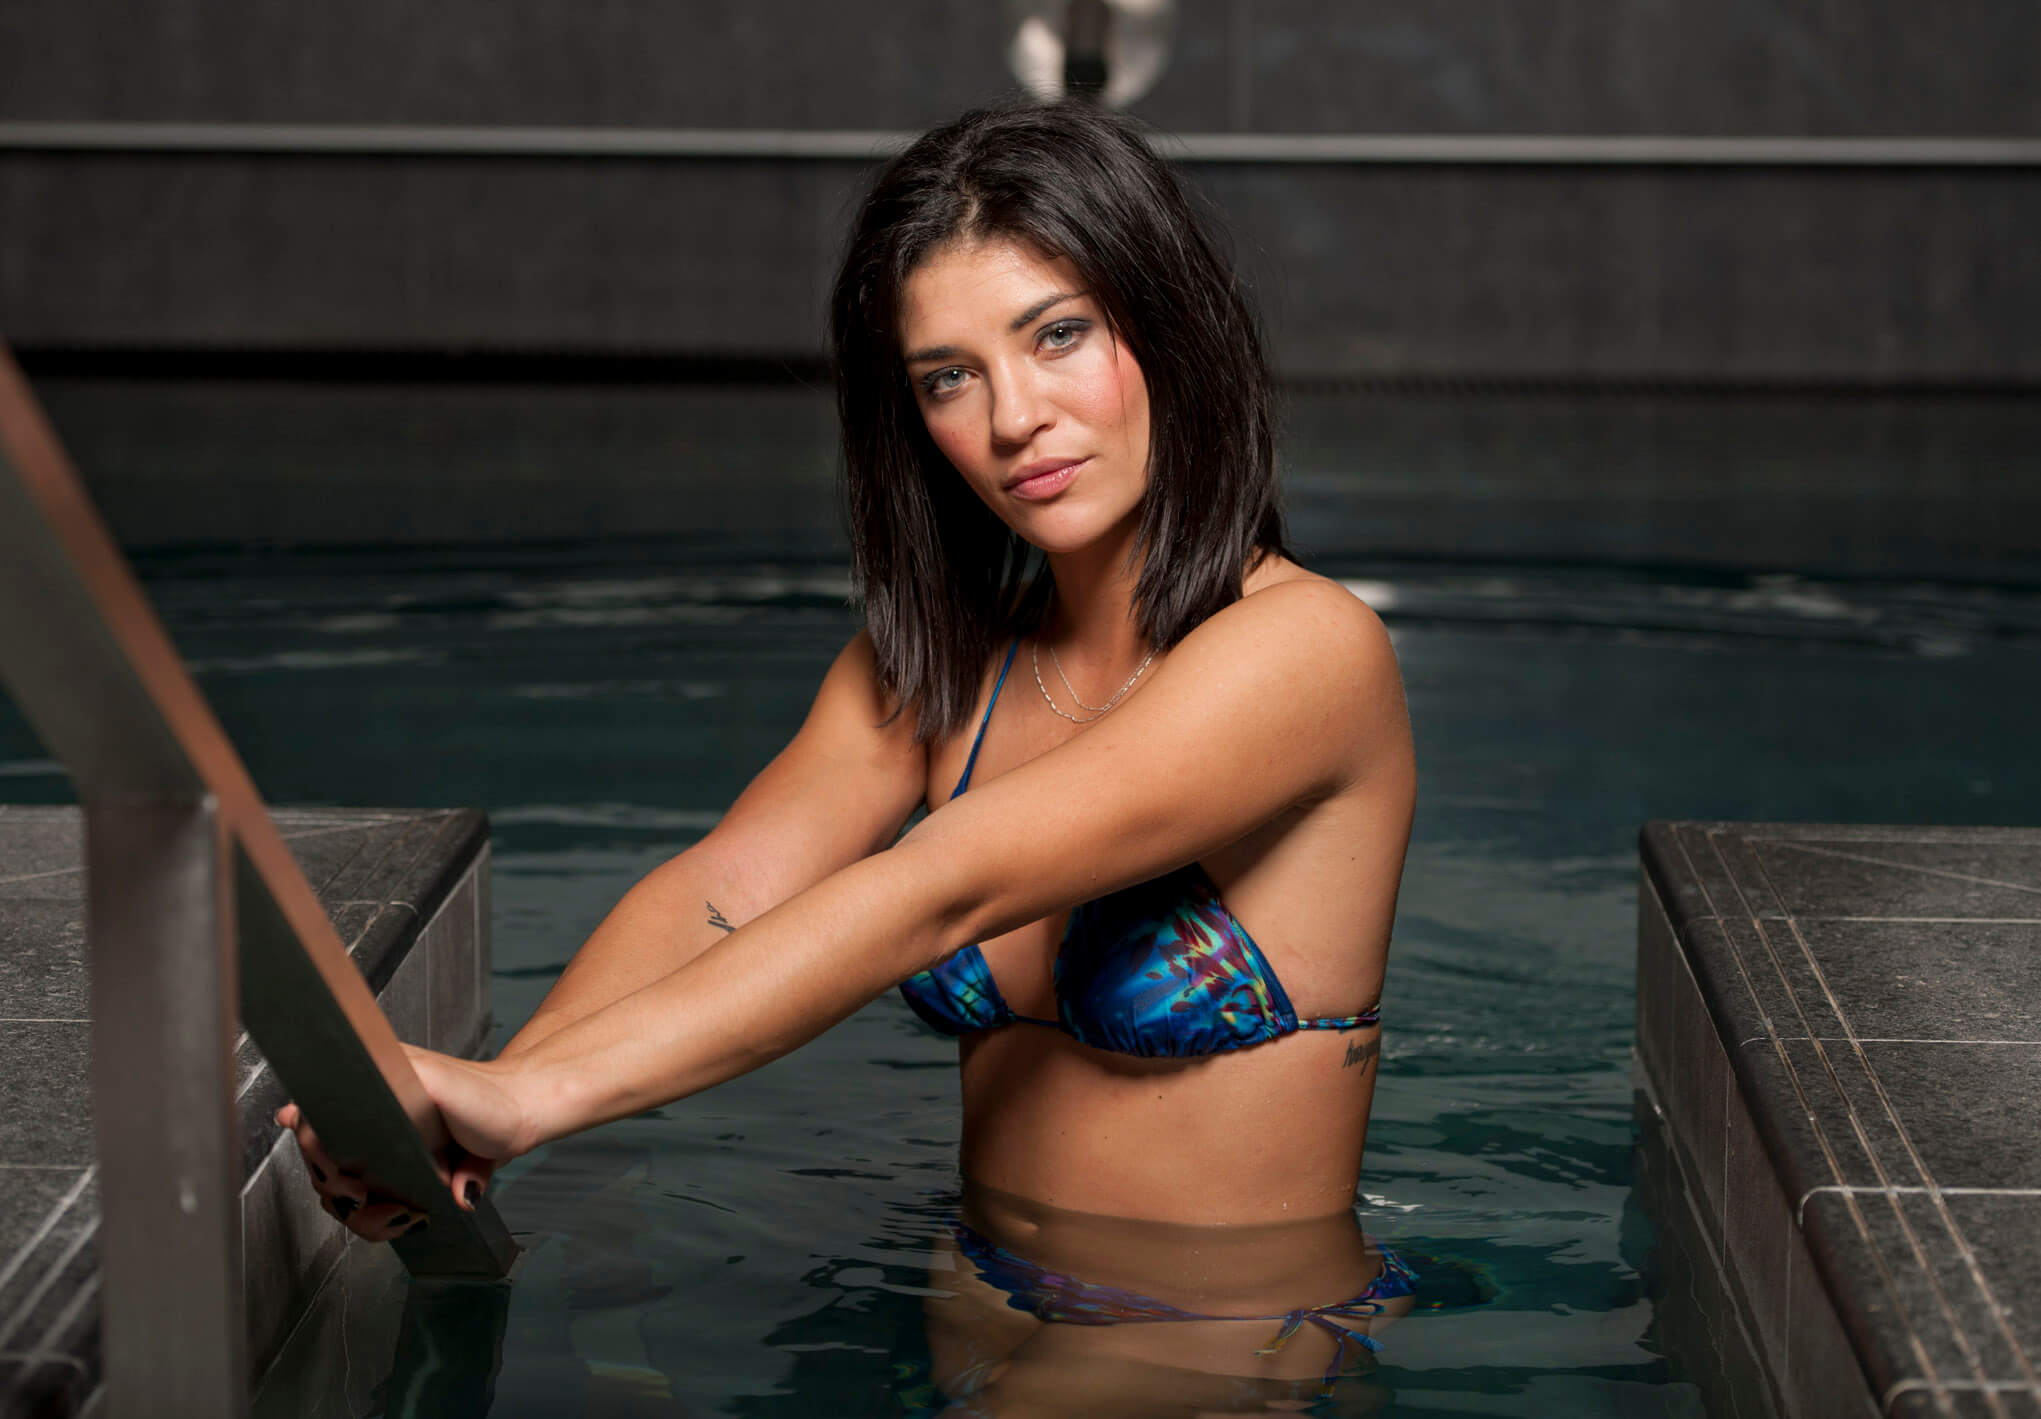 Jessica Szohr bikini photo